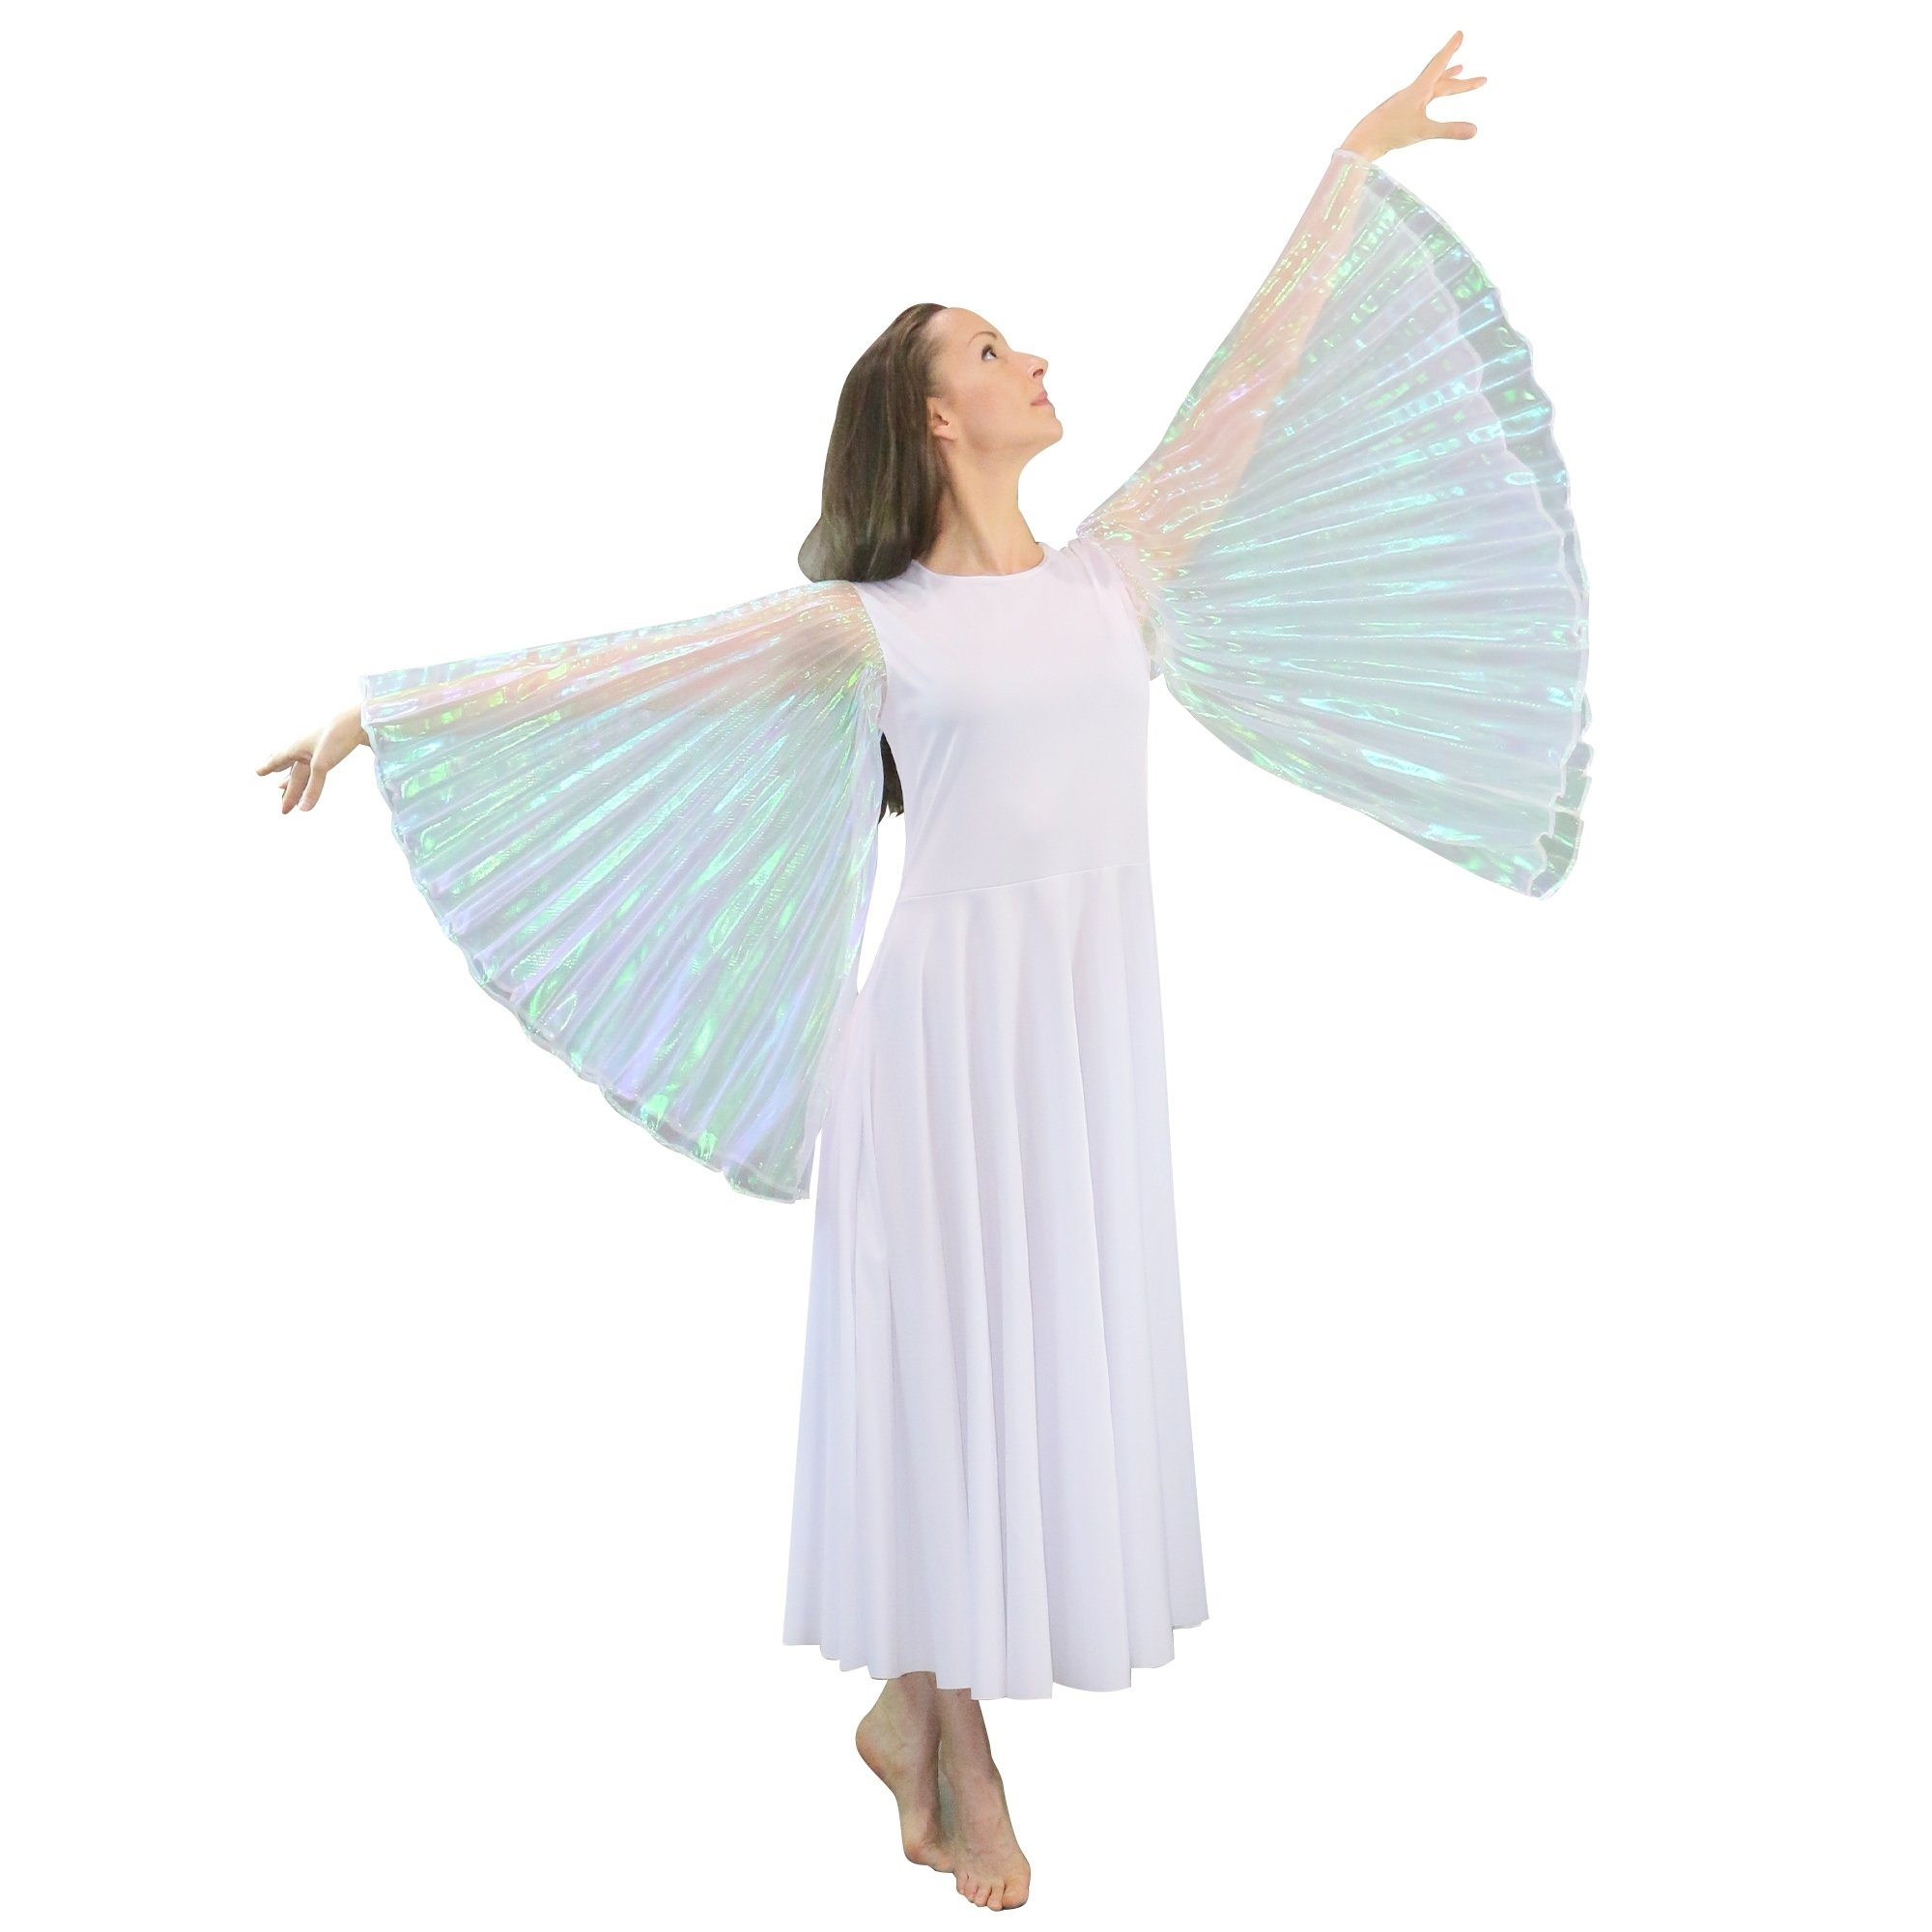 Danzcue Praise Dance Full Length Wing Sleeve Dress